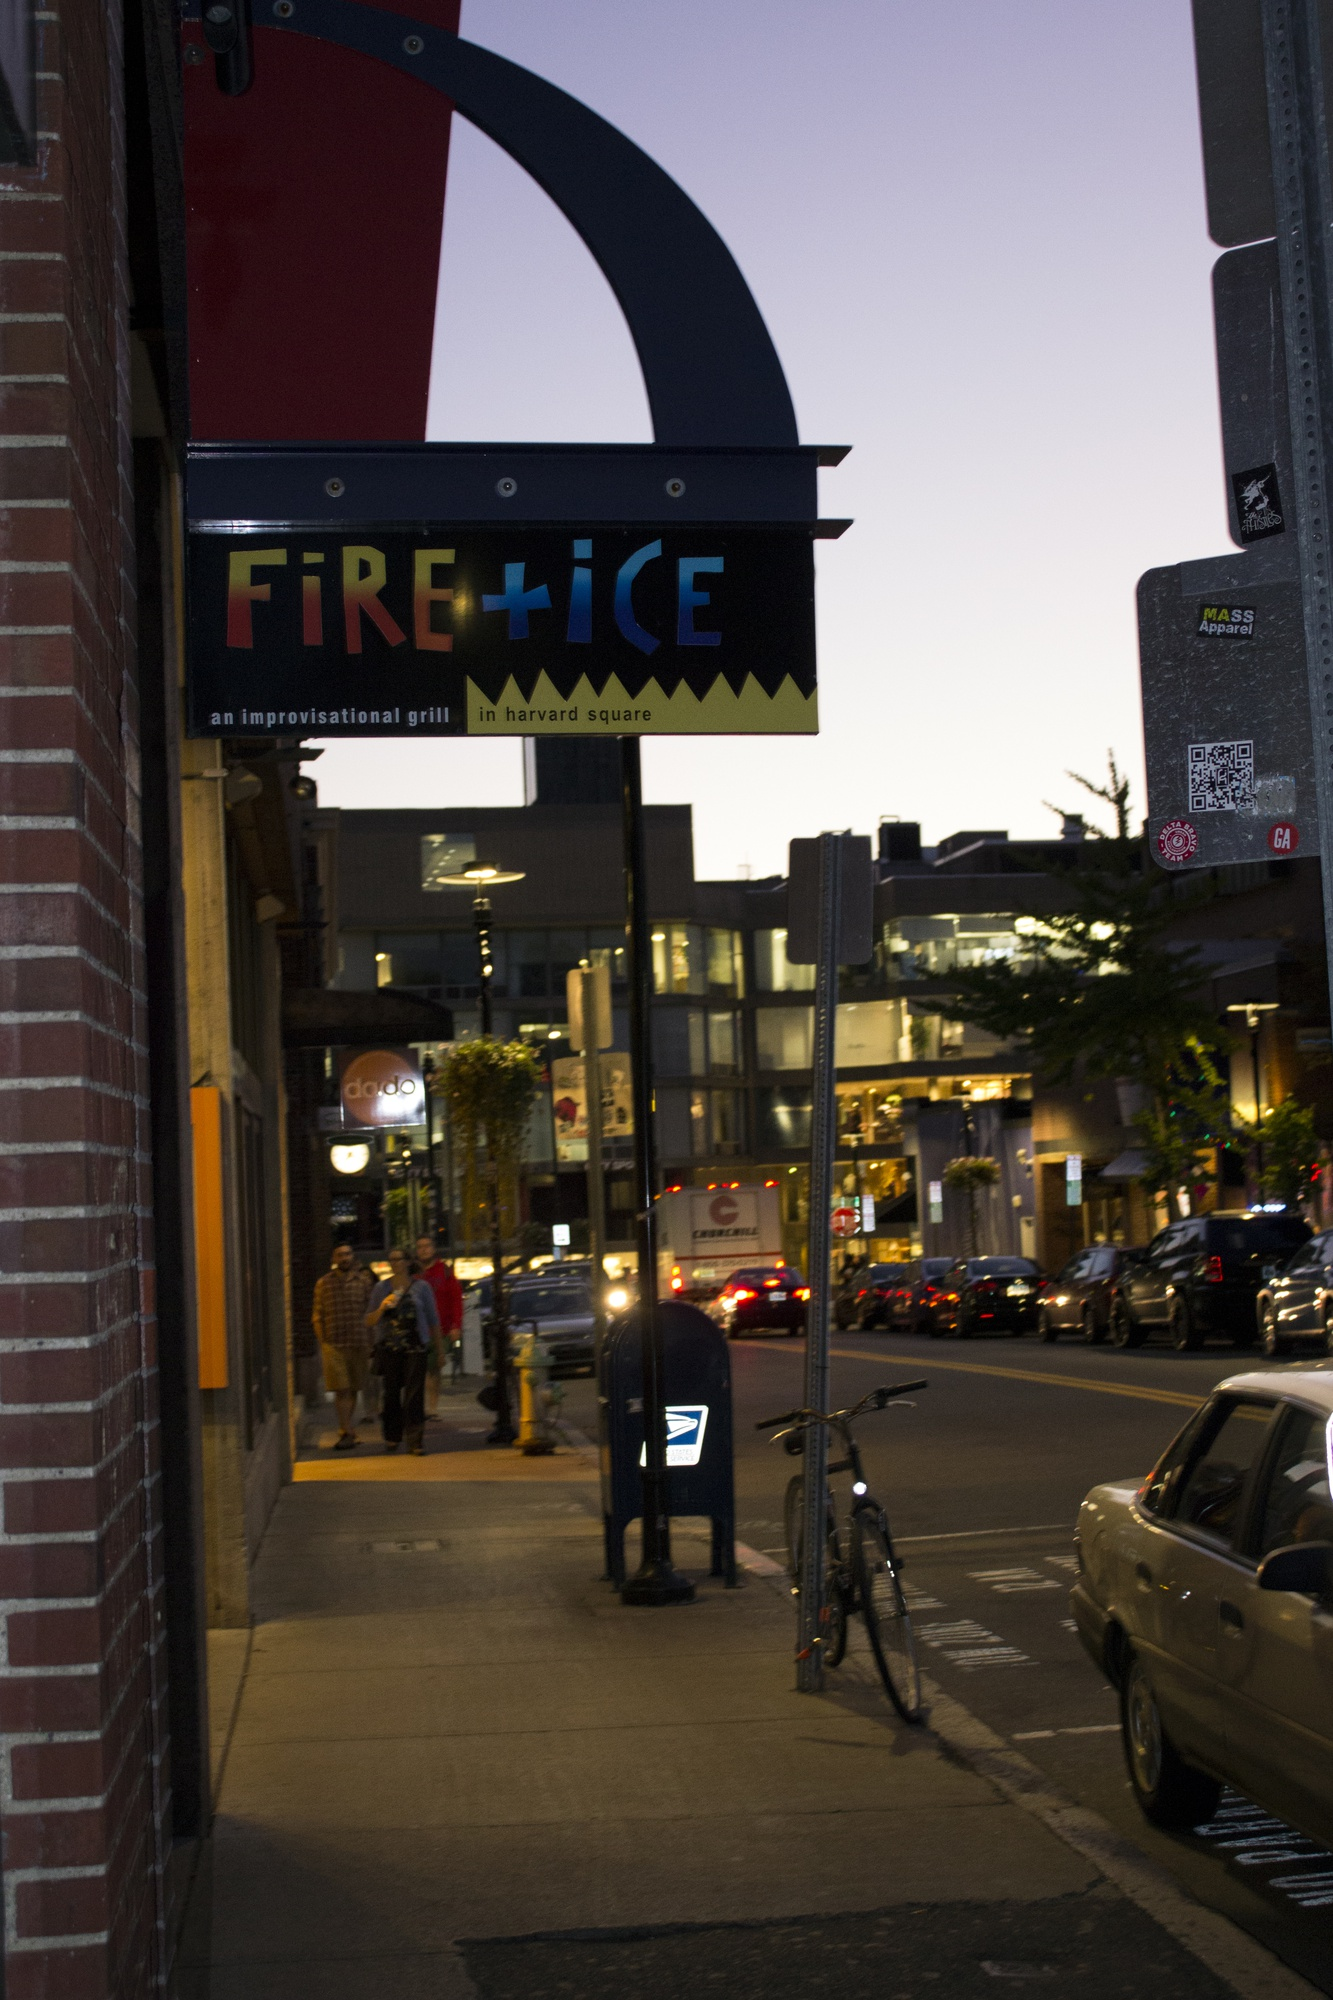 The well-known Harvard Square restaurant FiRE+iCE, closed permanently on Sunday after two decades in Cambridge.